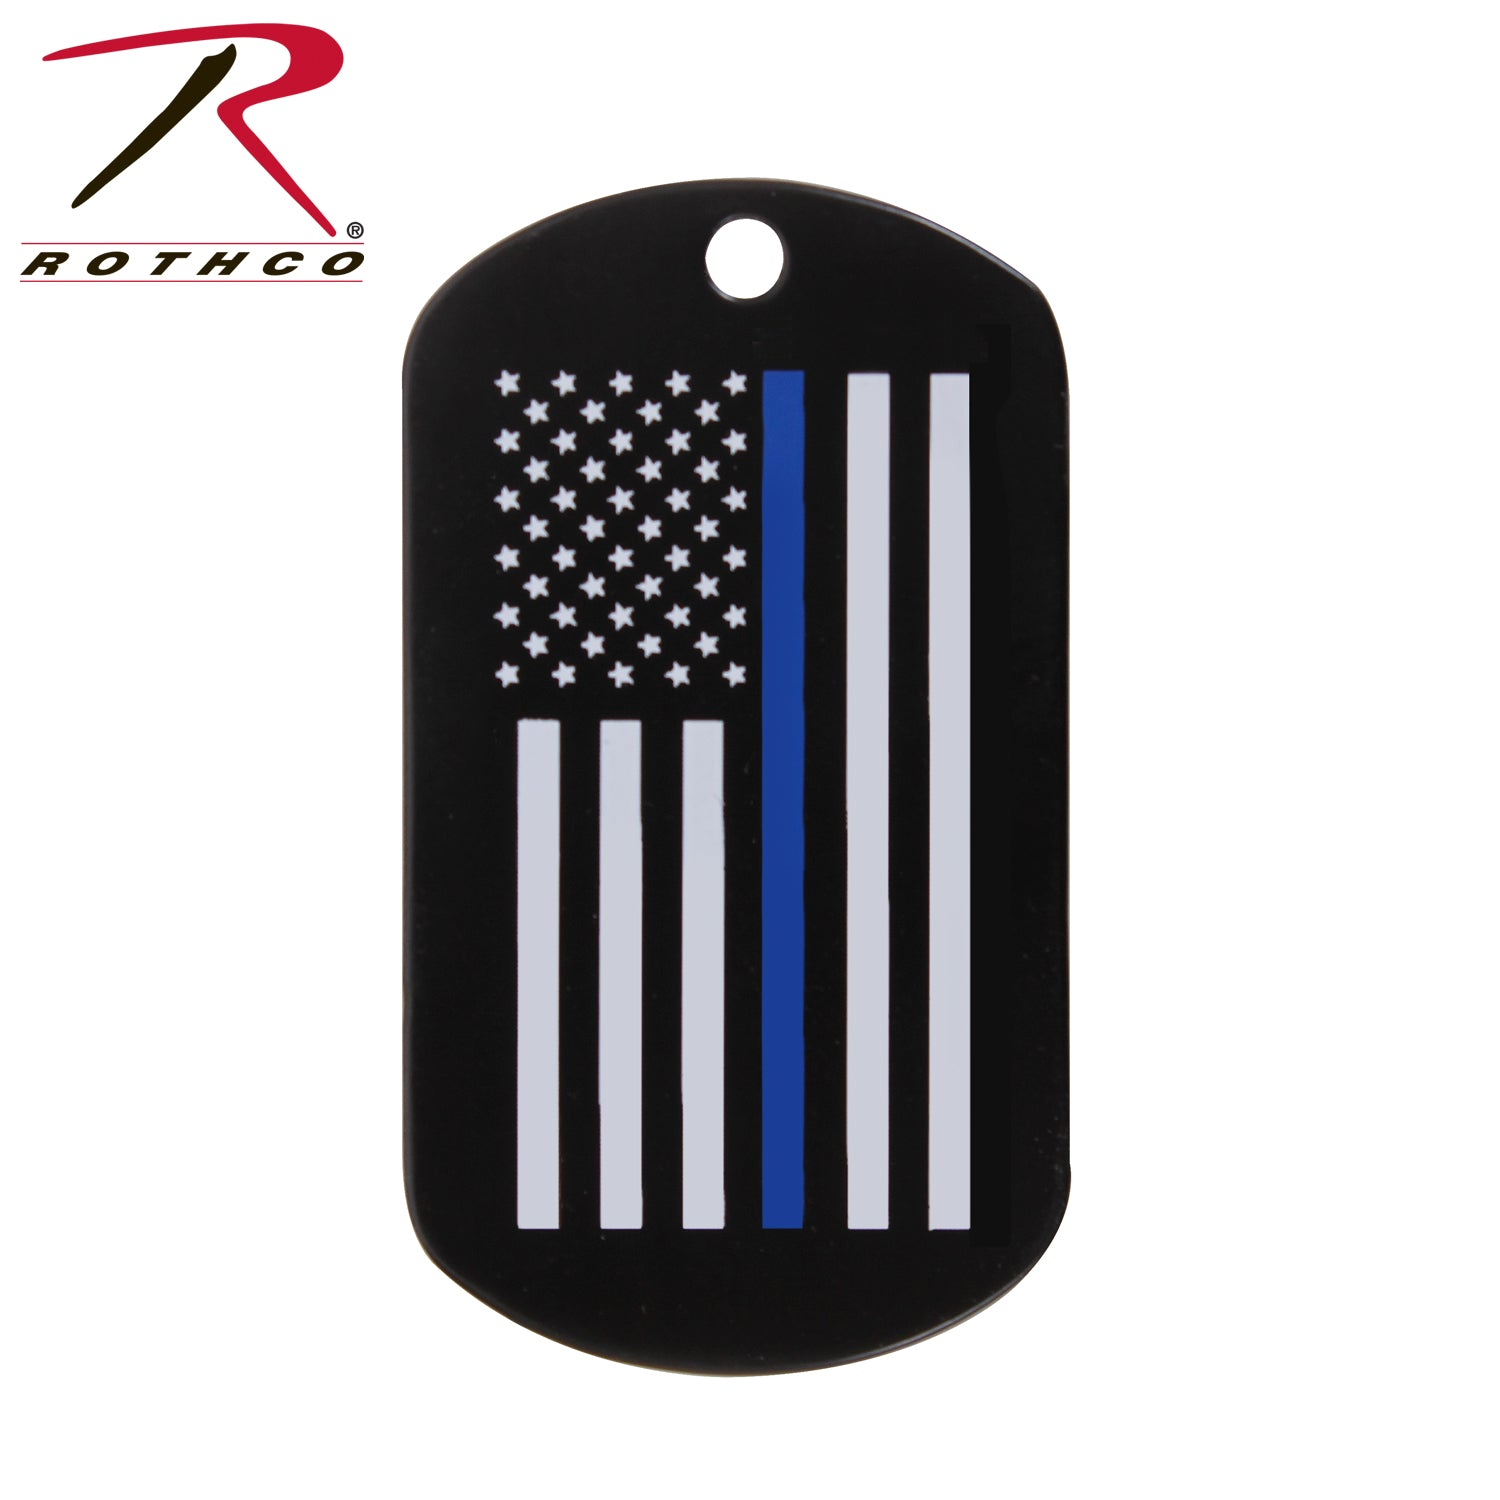 Rothco Thin Blue Line Dog Tag